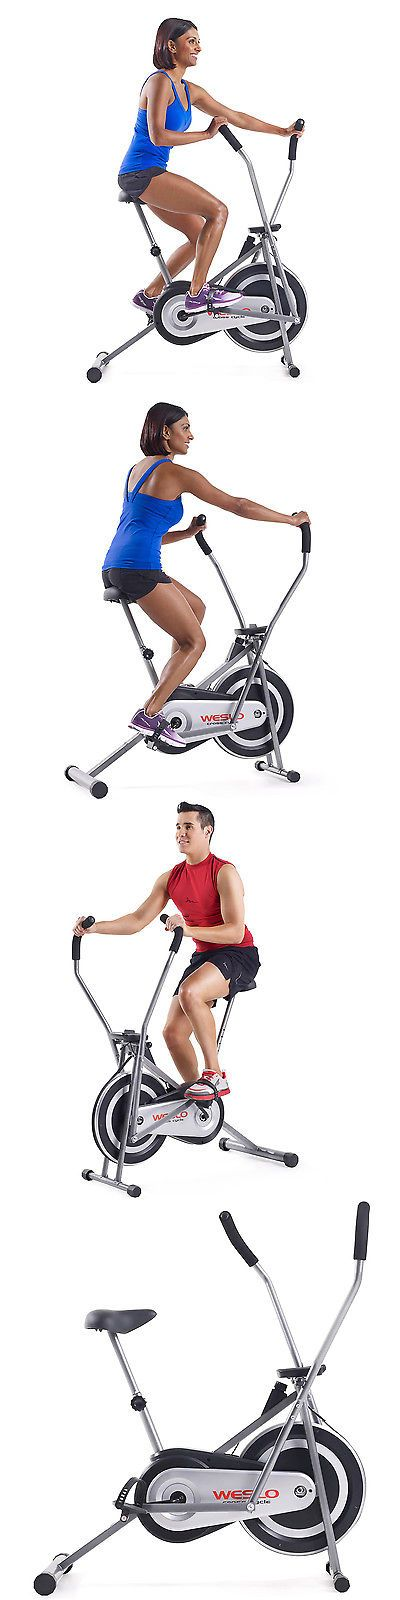 Exercise Bikes 58102: Exercise Upright Bike Indoor Stationary Bicycle Cardio Workout Trainer Cycle Gym BUY IT NOW ONLY: $118.25